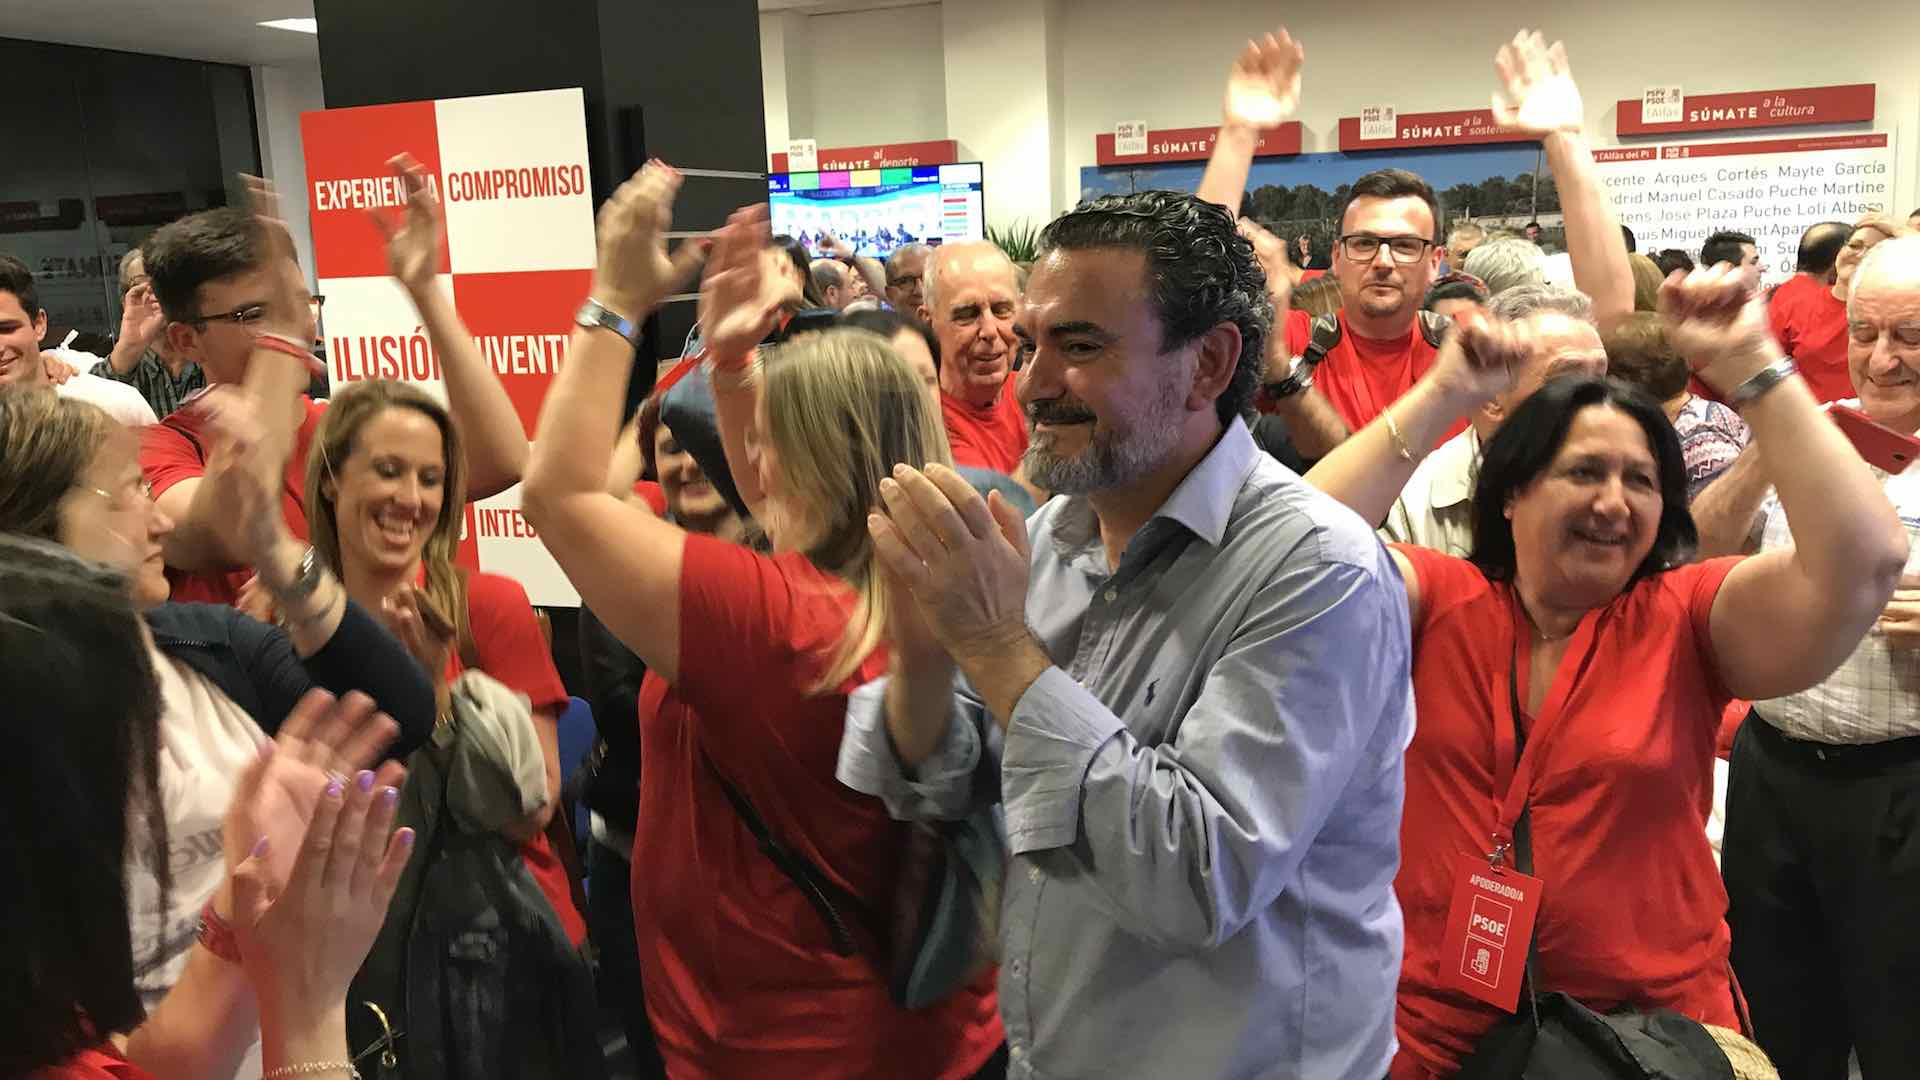 VICENTE ARQUES PSOE MAYORIA ABSOLUTA